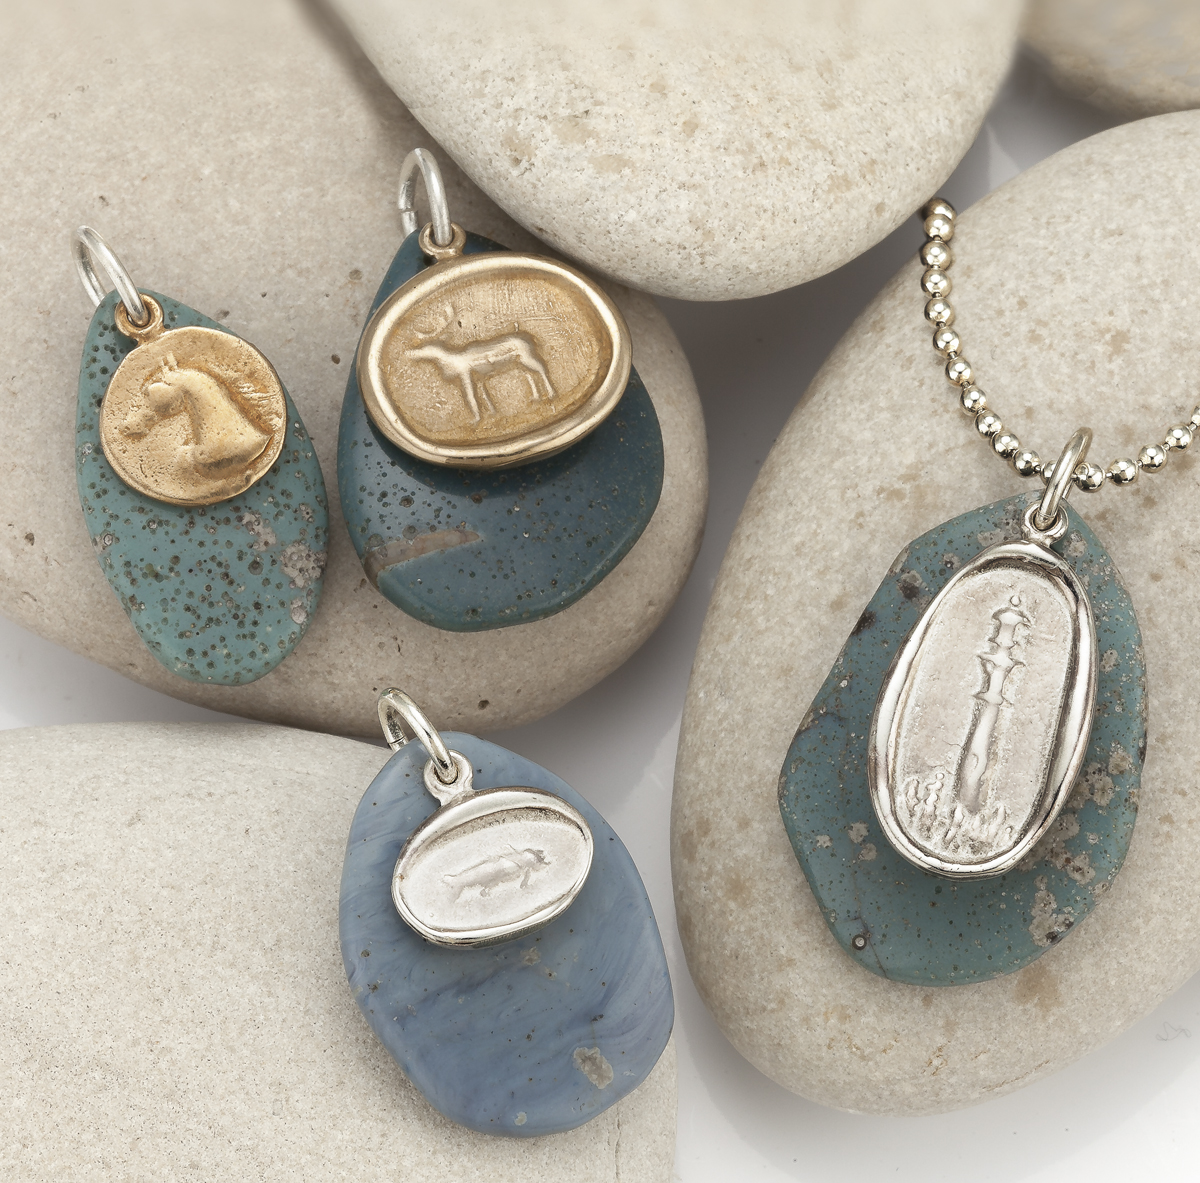 leland blue and pendants up close